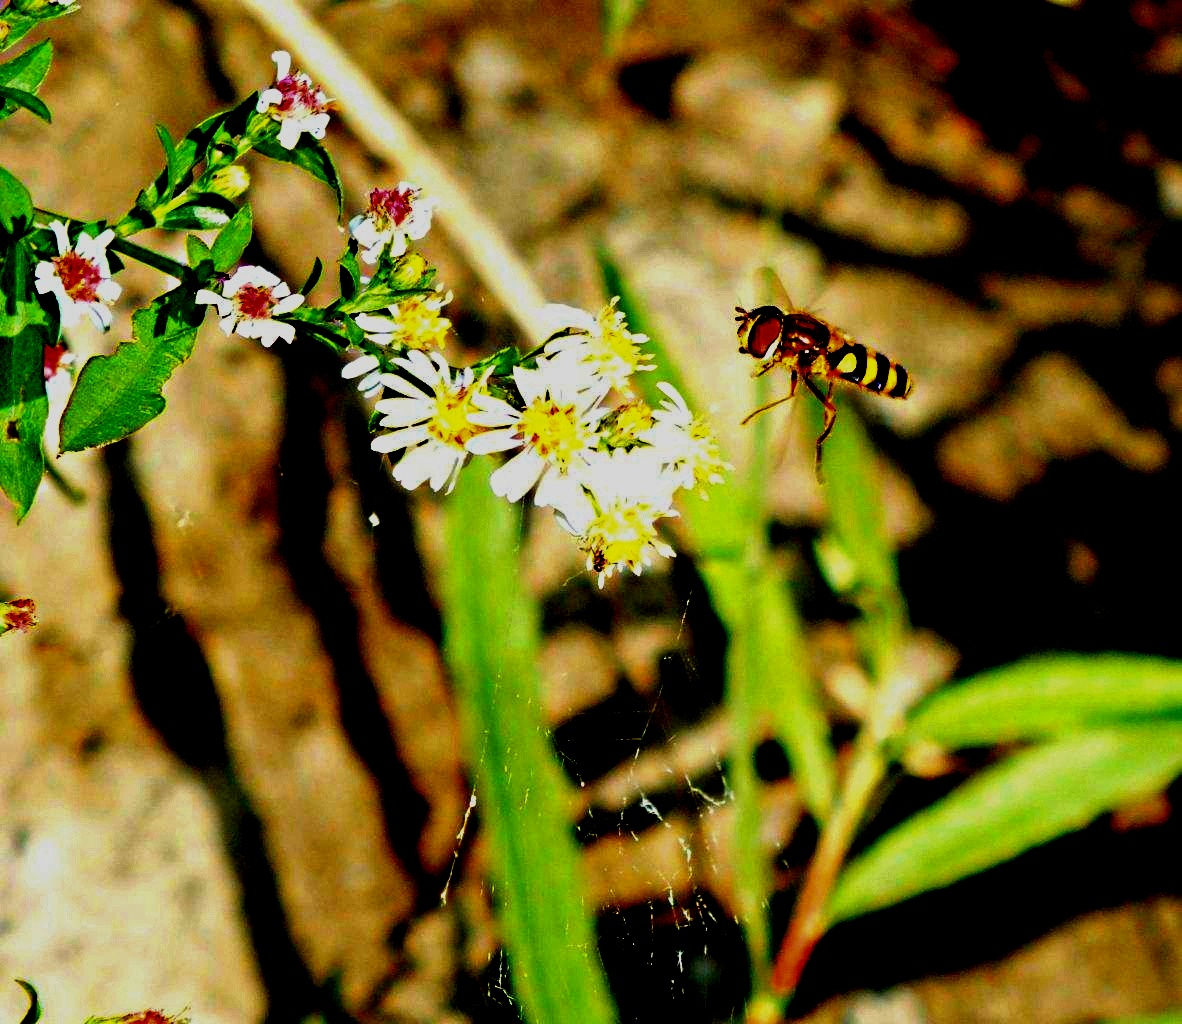 I'm not a bee & I don't sting! :  Flying Hover Fly ... Drone Fly ... by Thomas Peace 2013